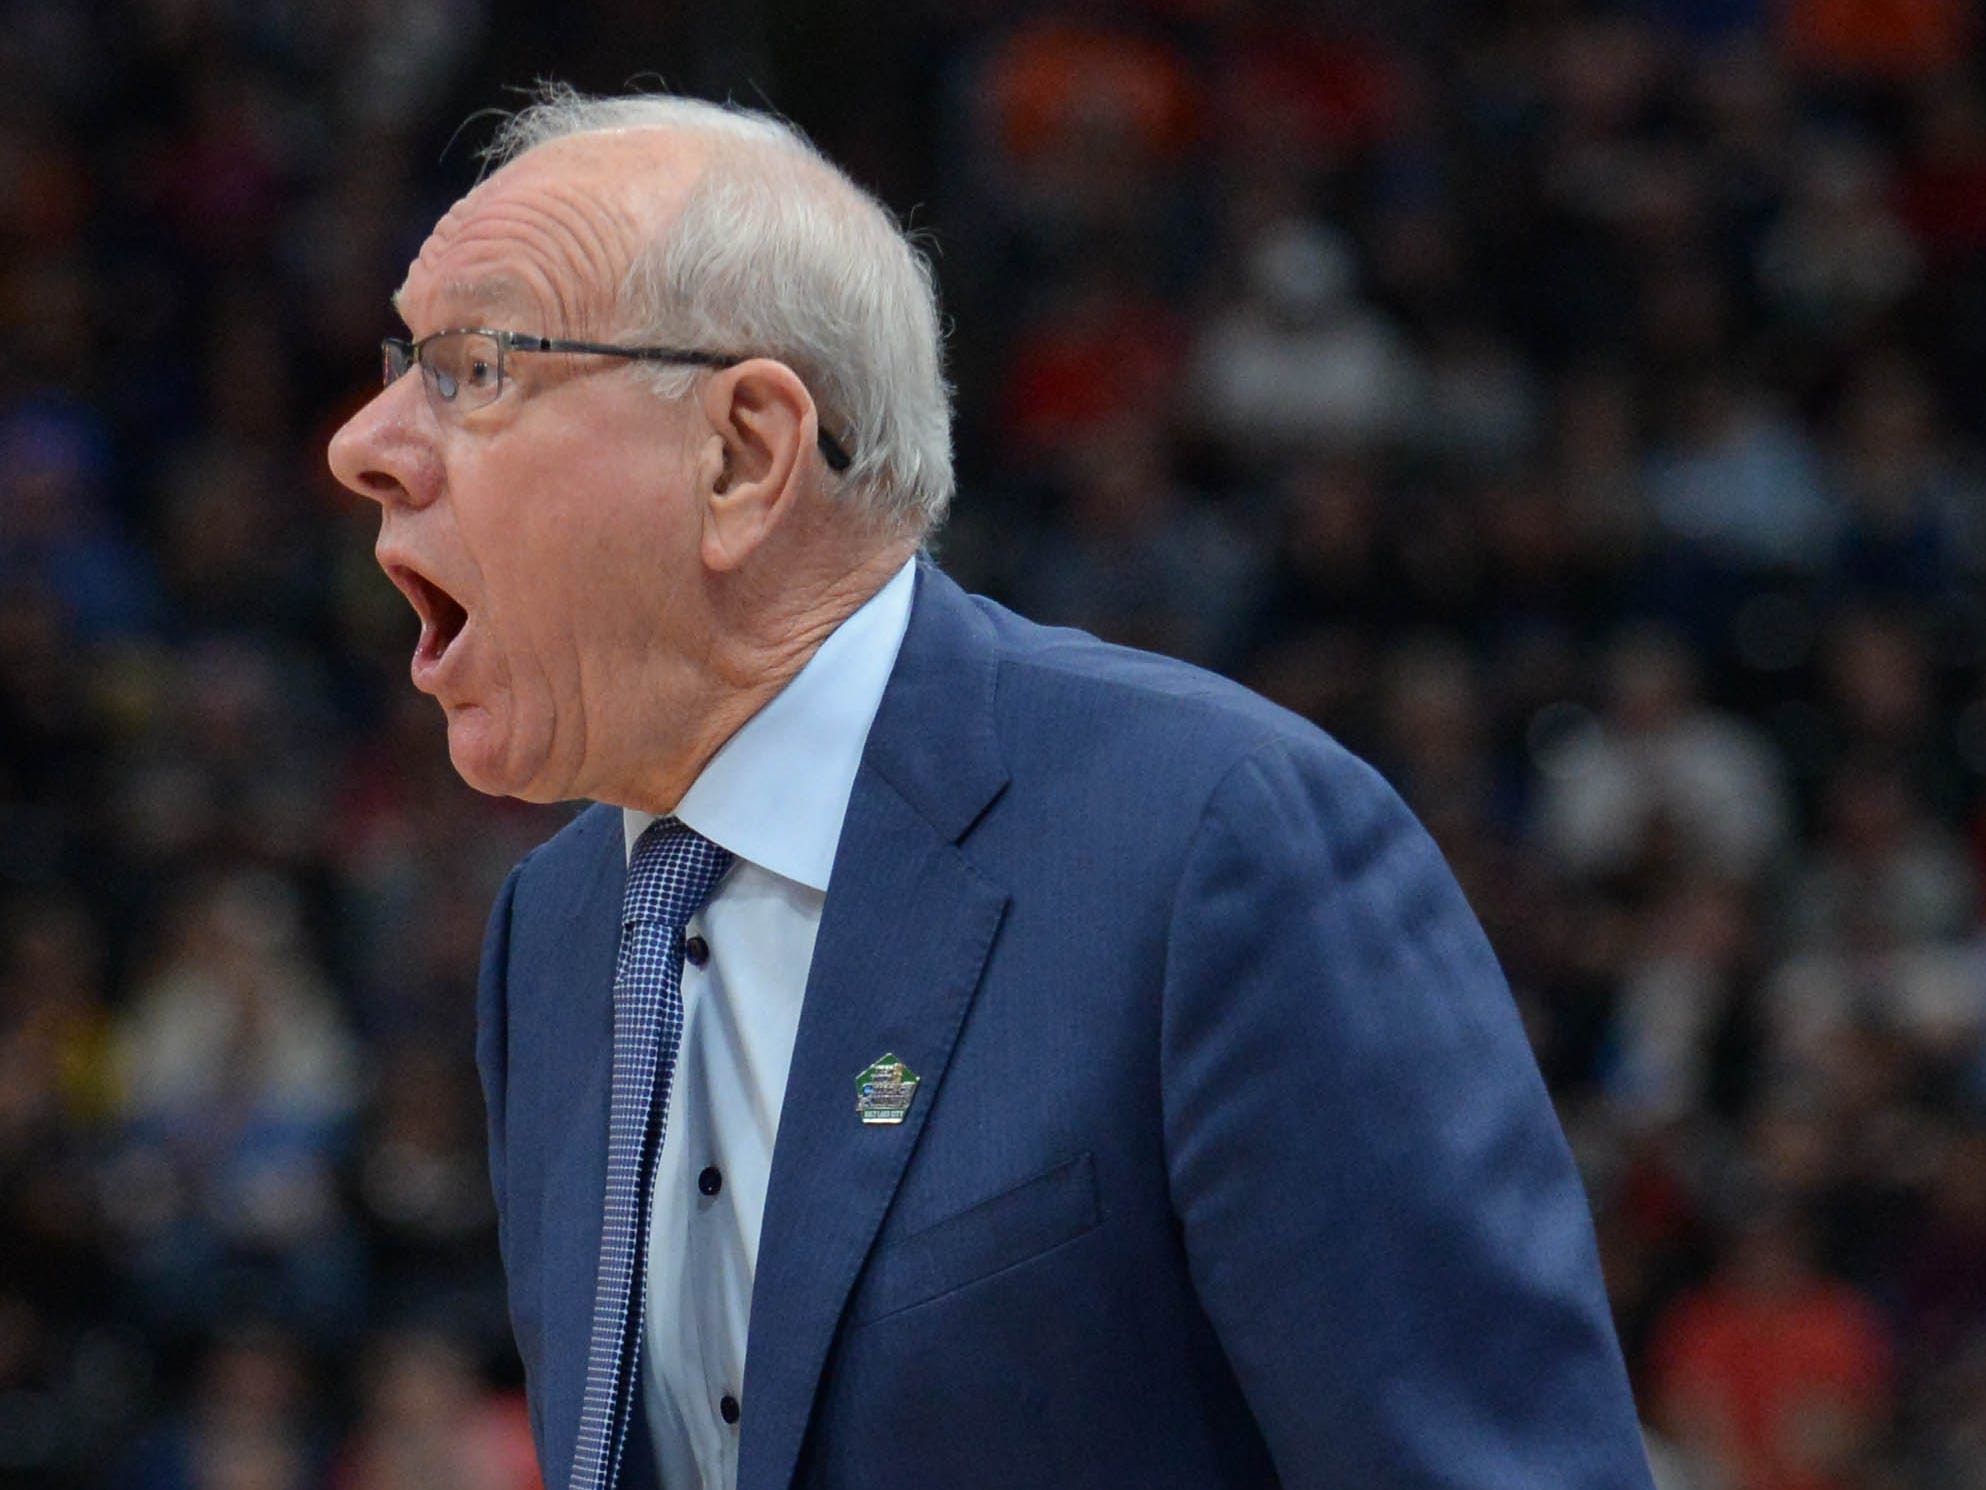 Syracuse head coach Jim Boeheim reacts against the Baylor Bears during the first half in the first round of the 2019 NCAA Tournament at Vivint Smart Home Arena in Salt Lake City.